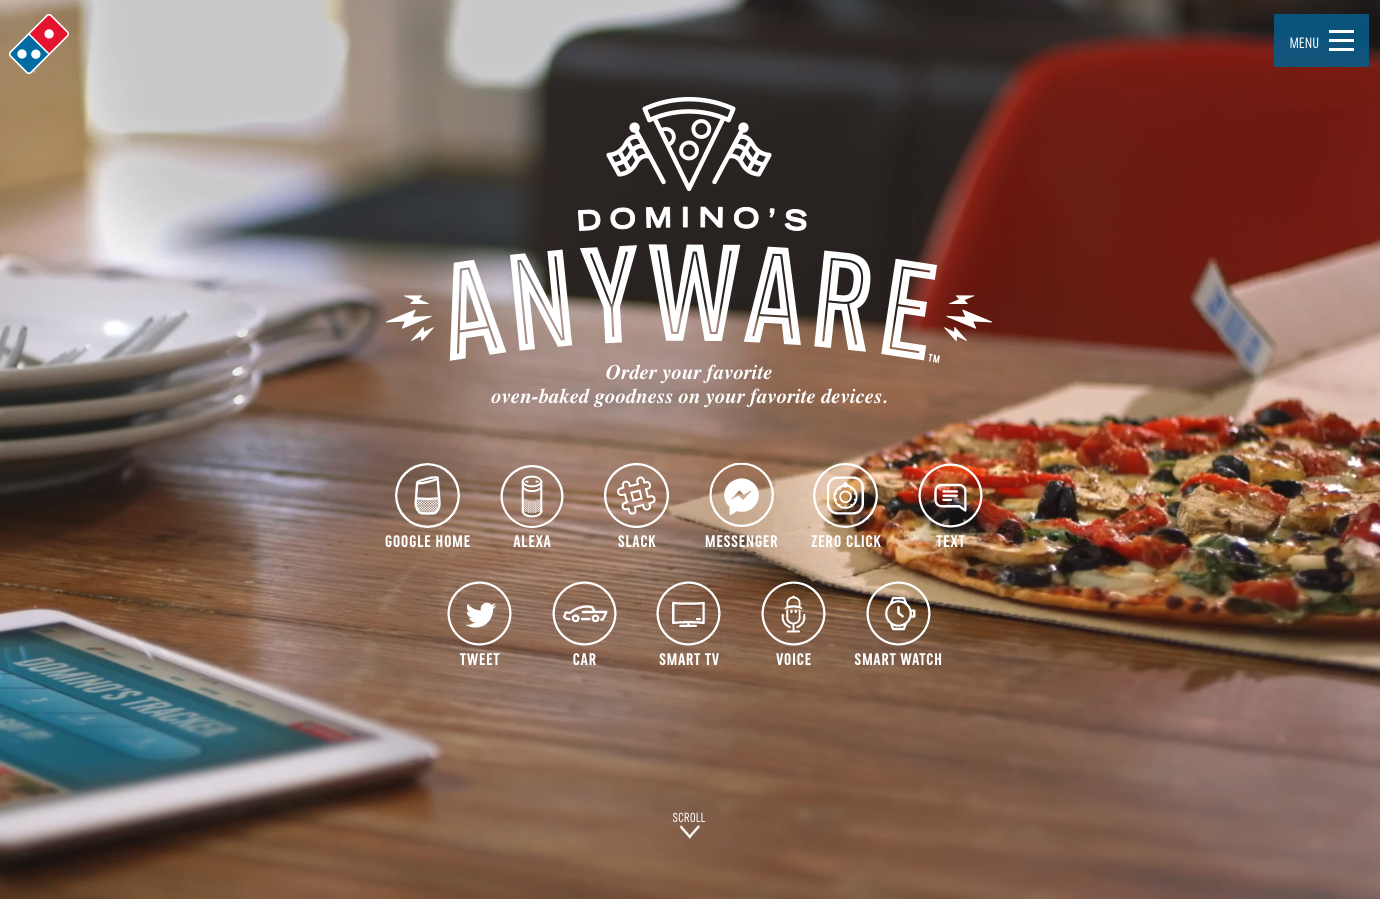 The Domino's pizza anyware site was accessed on Feburary 2, 2020 and shows a video background of a pizza on a table overlayed with low contrast text and icons.